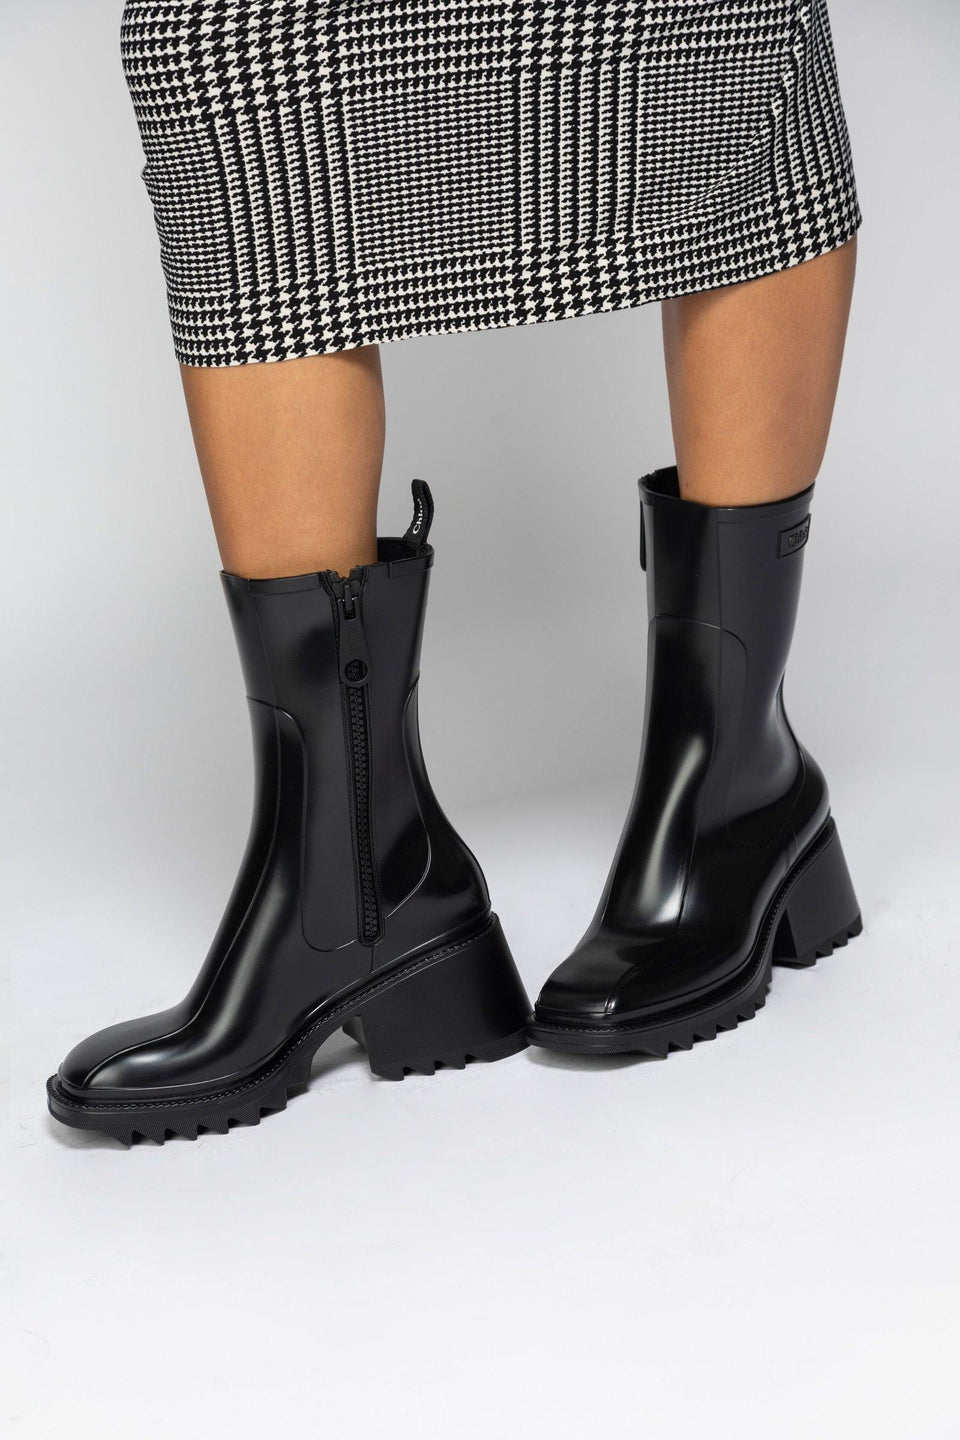 Betty Rain Boots - Sevens bags & shoes